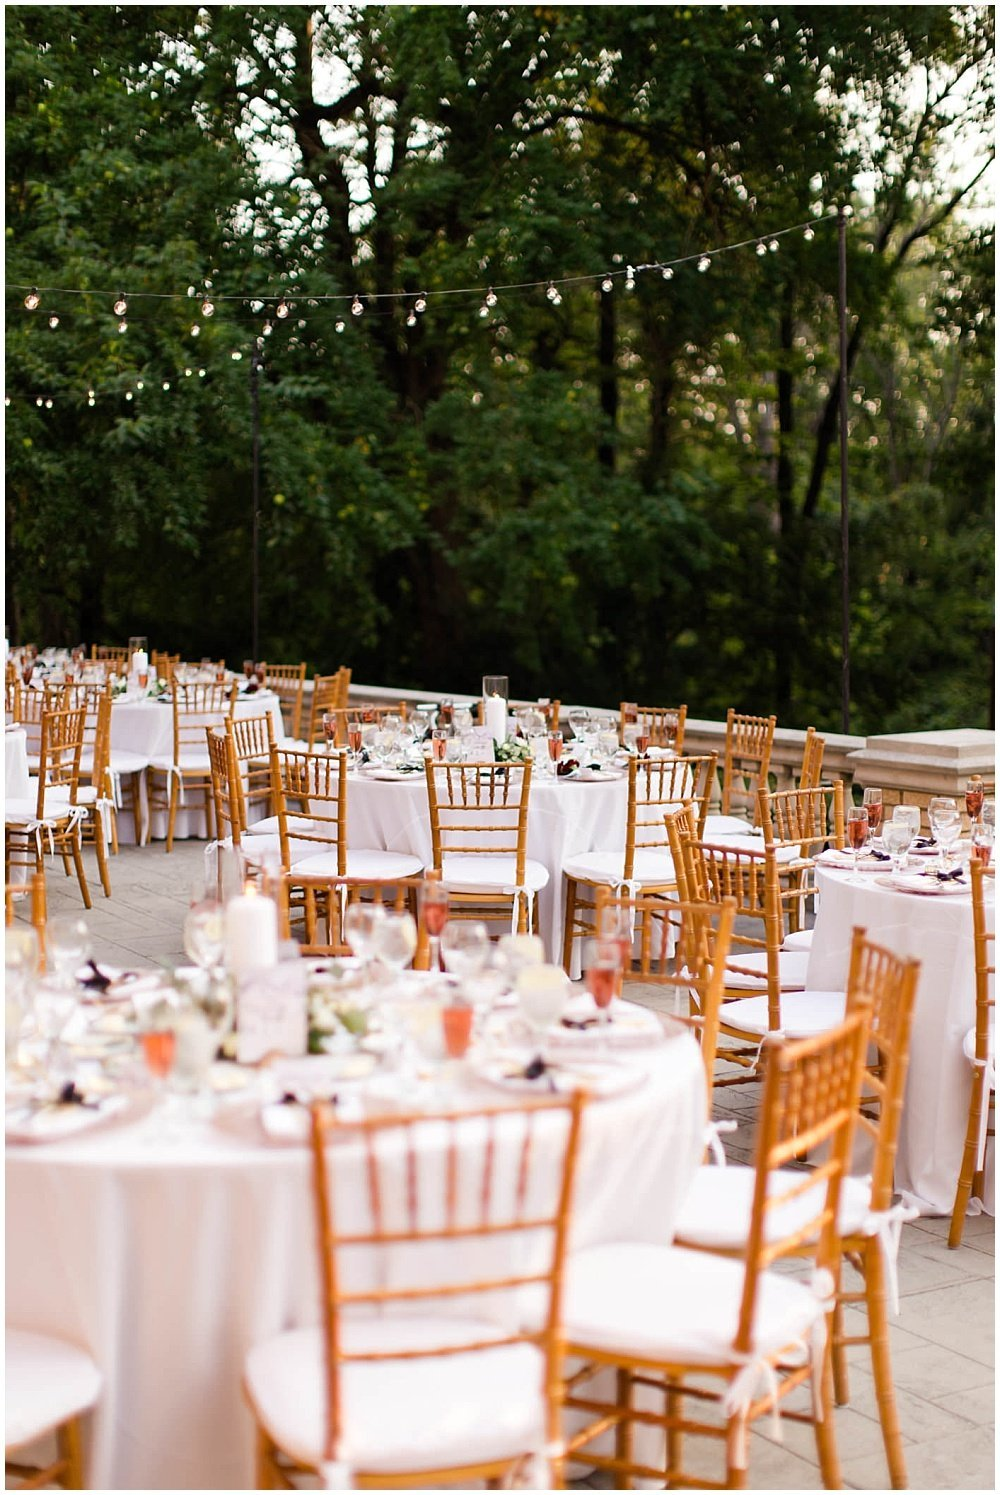 Summer-Outdoor-Terrace-Laurel-Hall-Indianapolis-Wedding-Danielle-Harris-Photography- Jessica-Dum-Wedding-Coordination-photo__0030